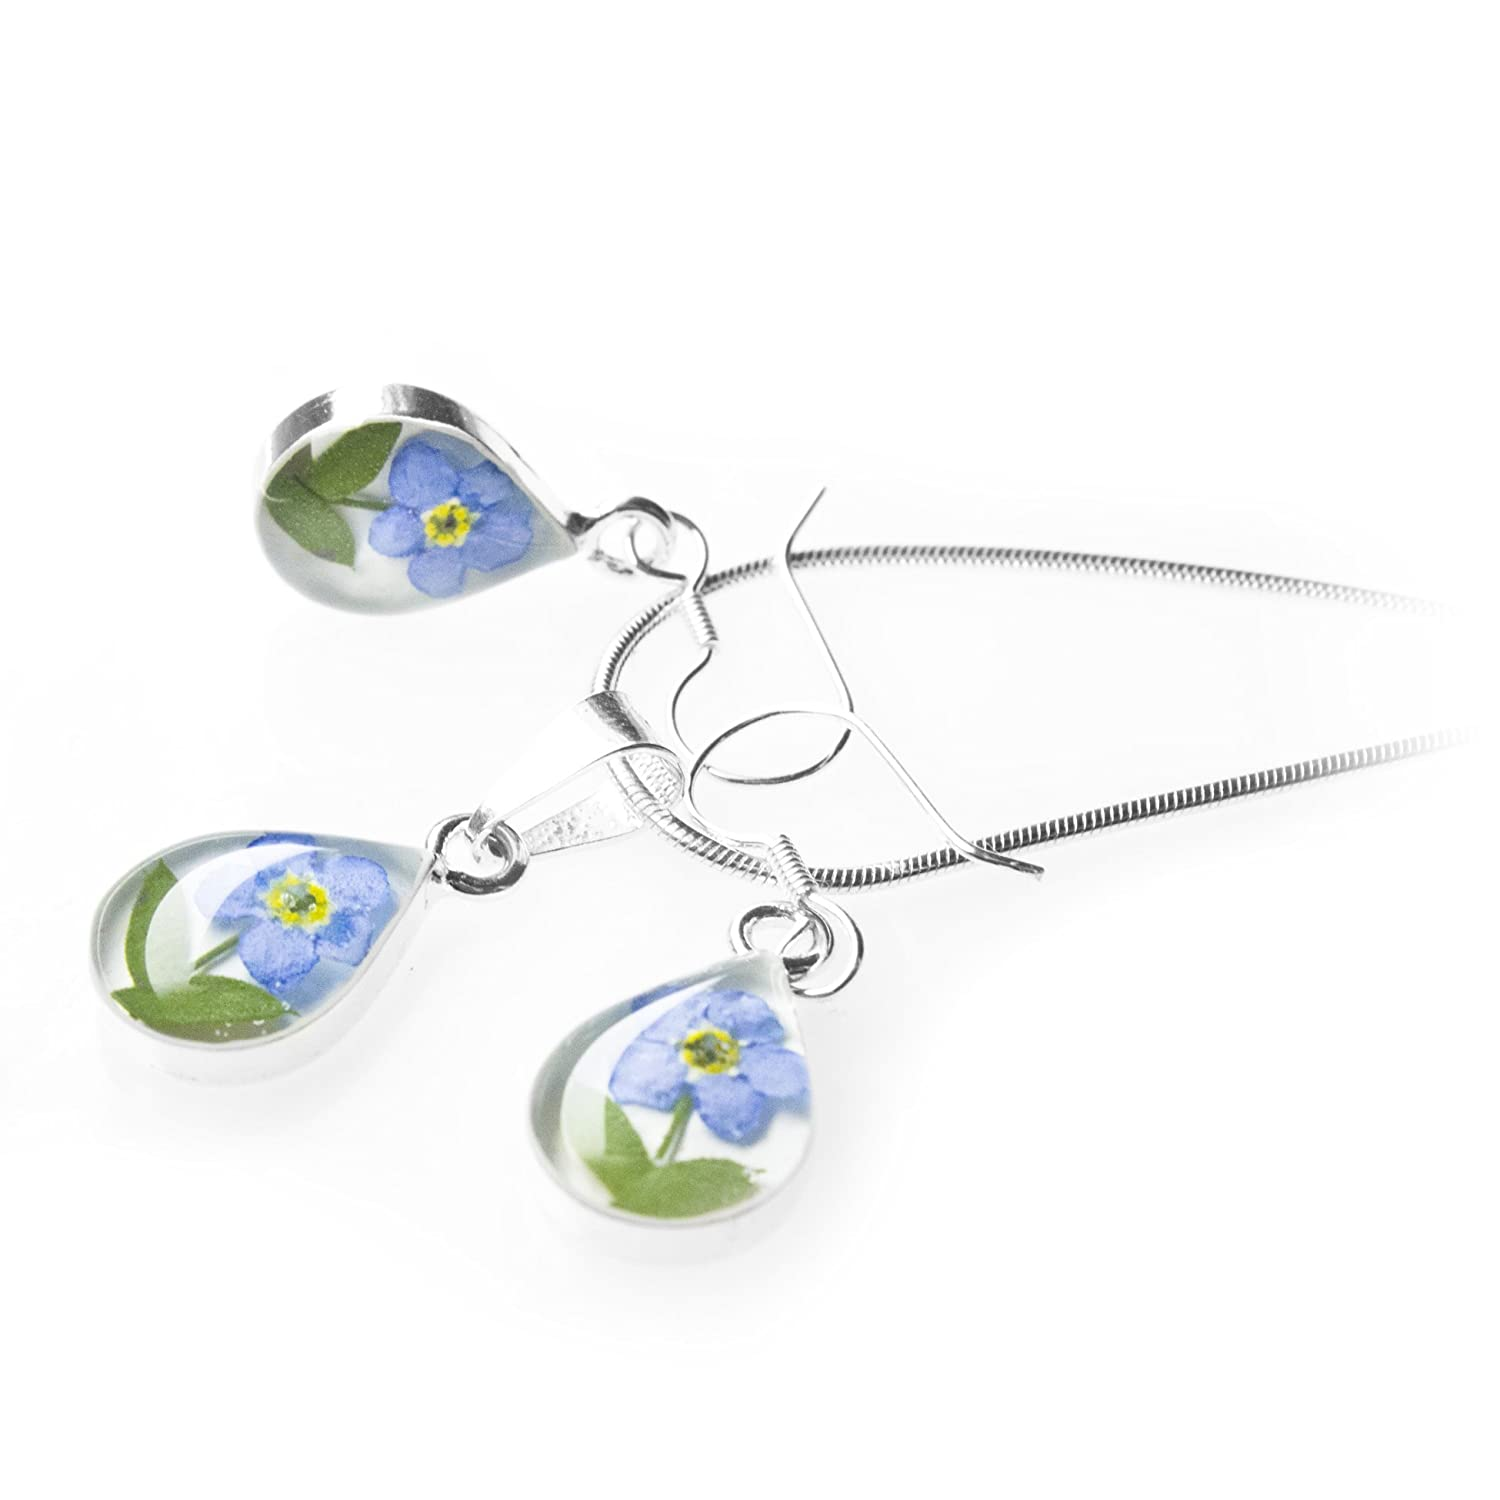 with Real Pressed Forget Me Not Flowers Symbol of Eternal Love in a White Background and 17.7 Mouse Tail Chain Floral Jewelry Sterling Silver Teardrop Necklace and Earrings by TAMI